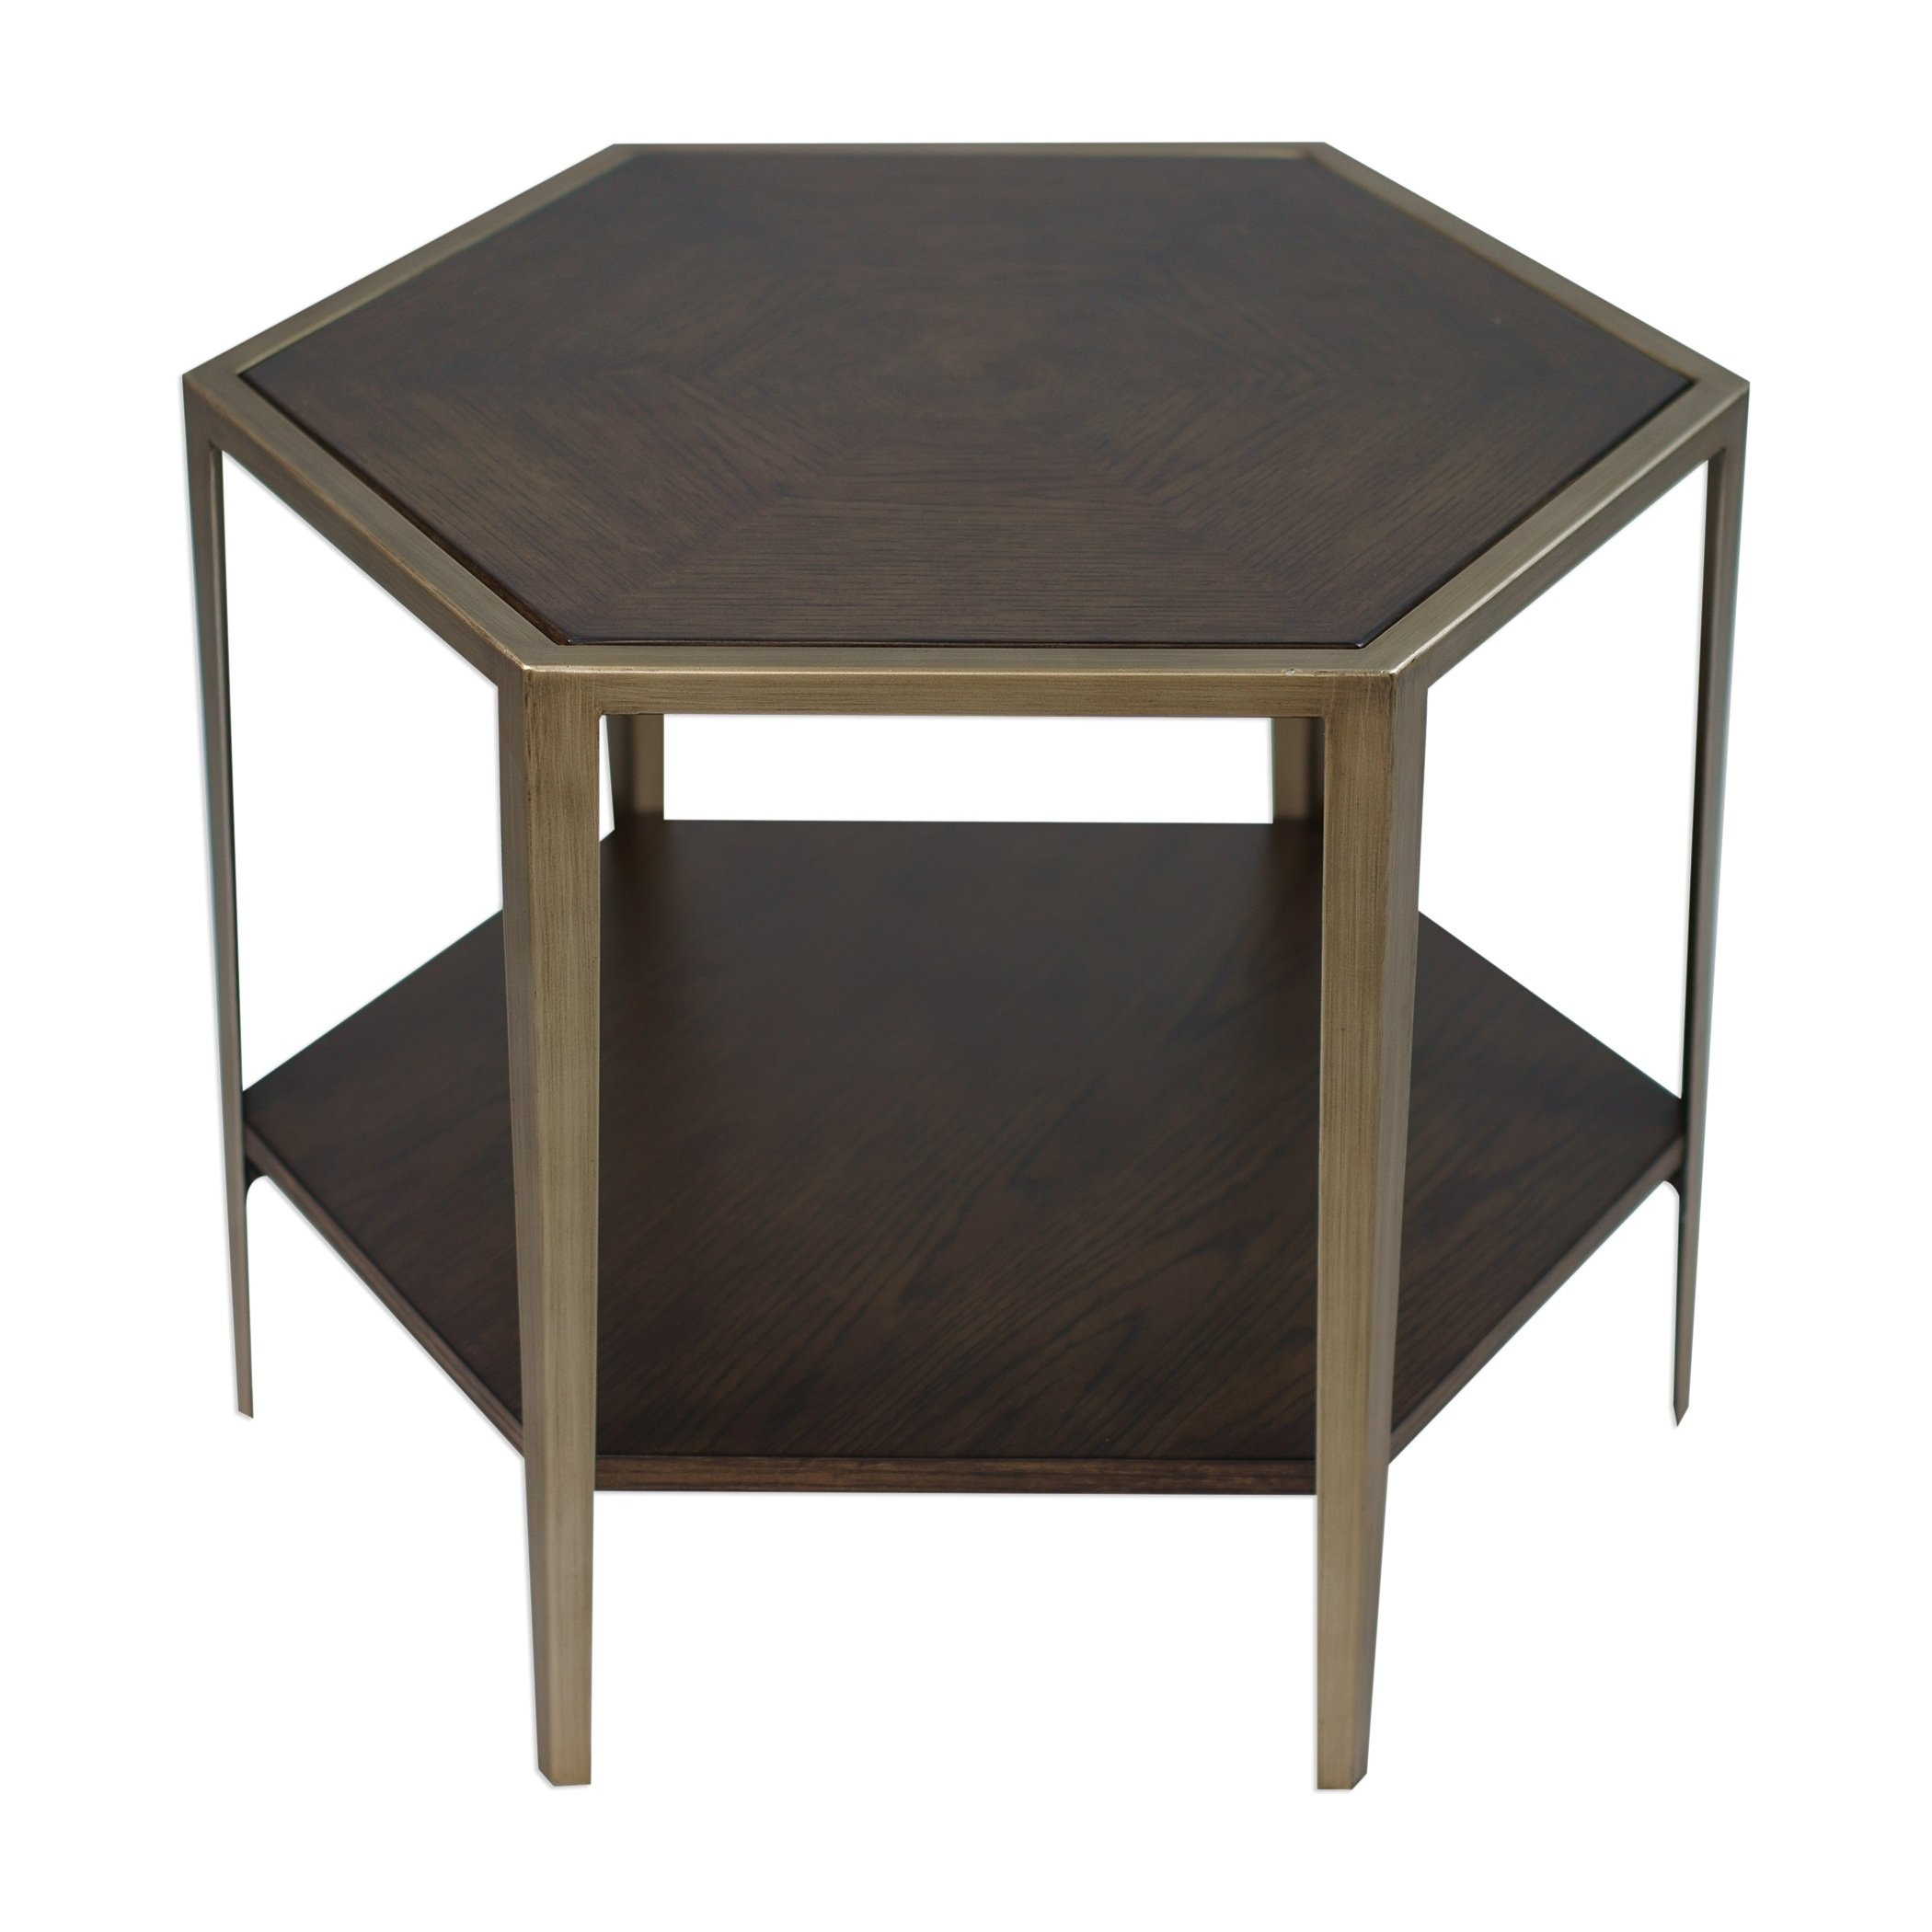 uttermost alicia deep walnut geometric accent table free vanora shipping today diy hairpin legs knotty pine clearance chairs half circle coffee pier one imports credit card